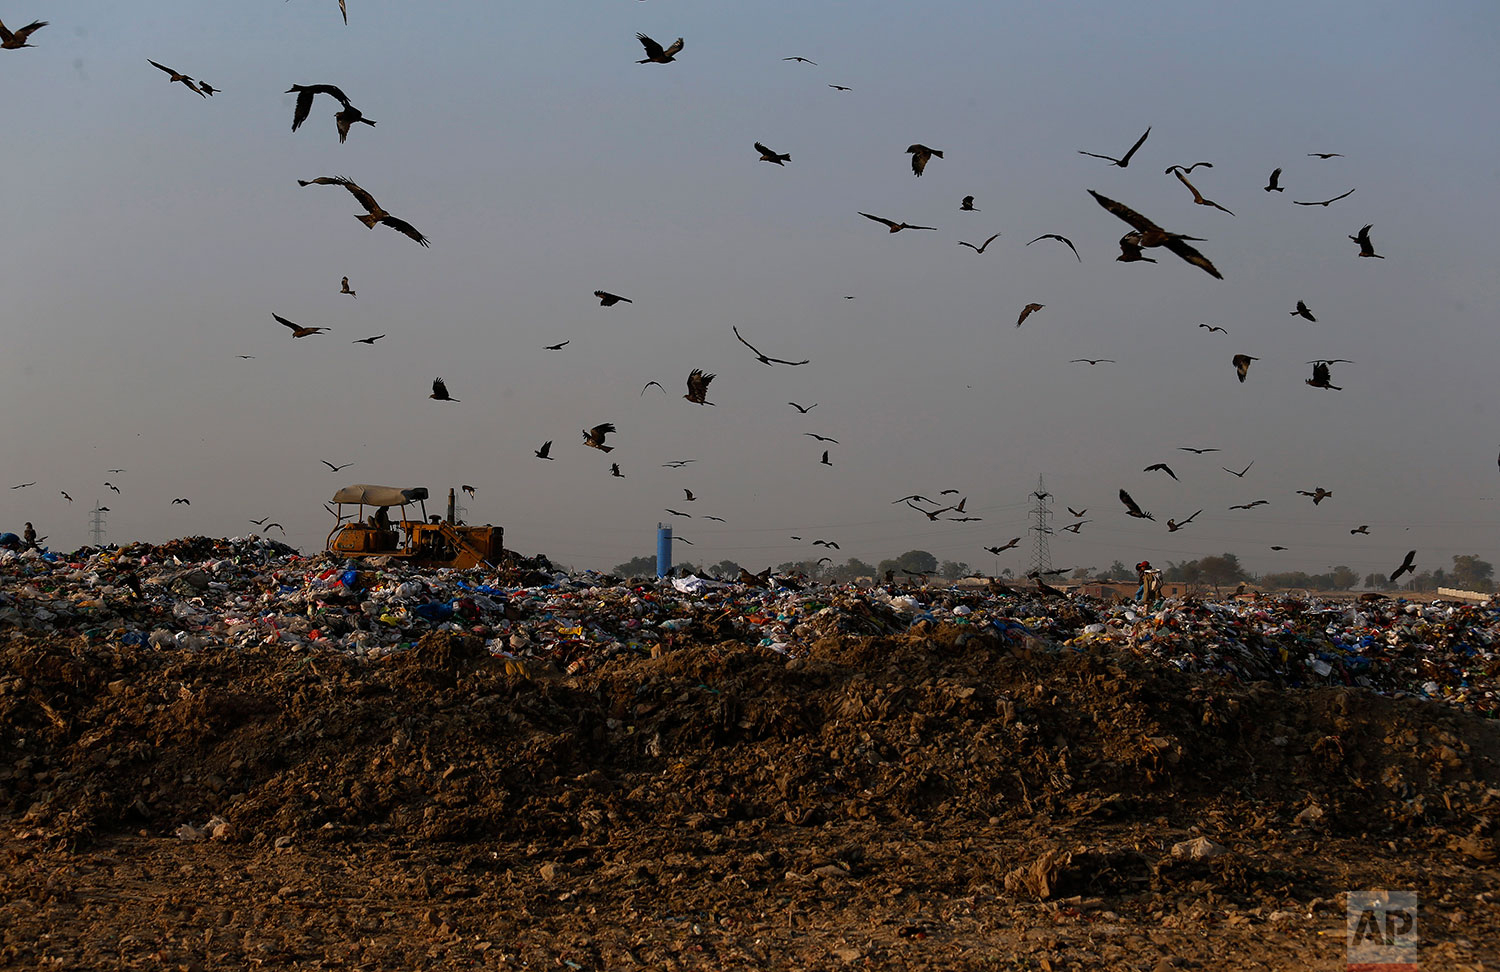 In this Tuesday, Dec. 4, 2018 photo, crows and black kites fly next to a tractor working on a garbage-dump on the outskirts of Islamabad, Pakistan. (AP Photo/Anjum Naveed)